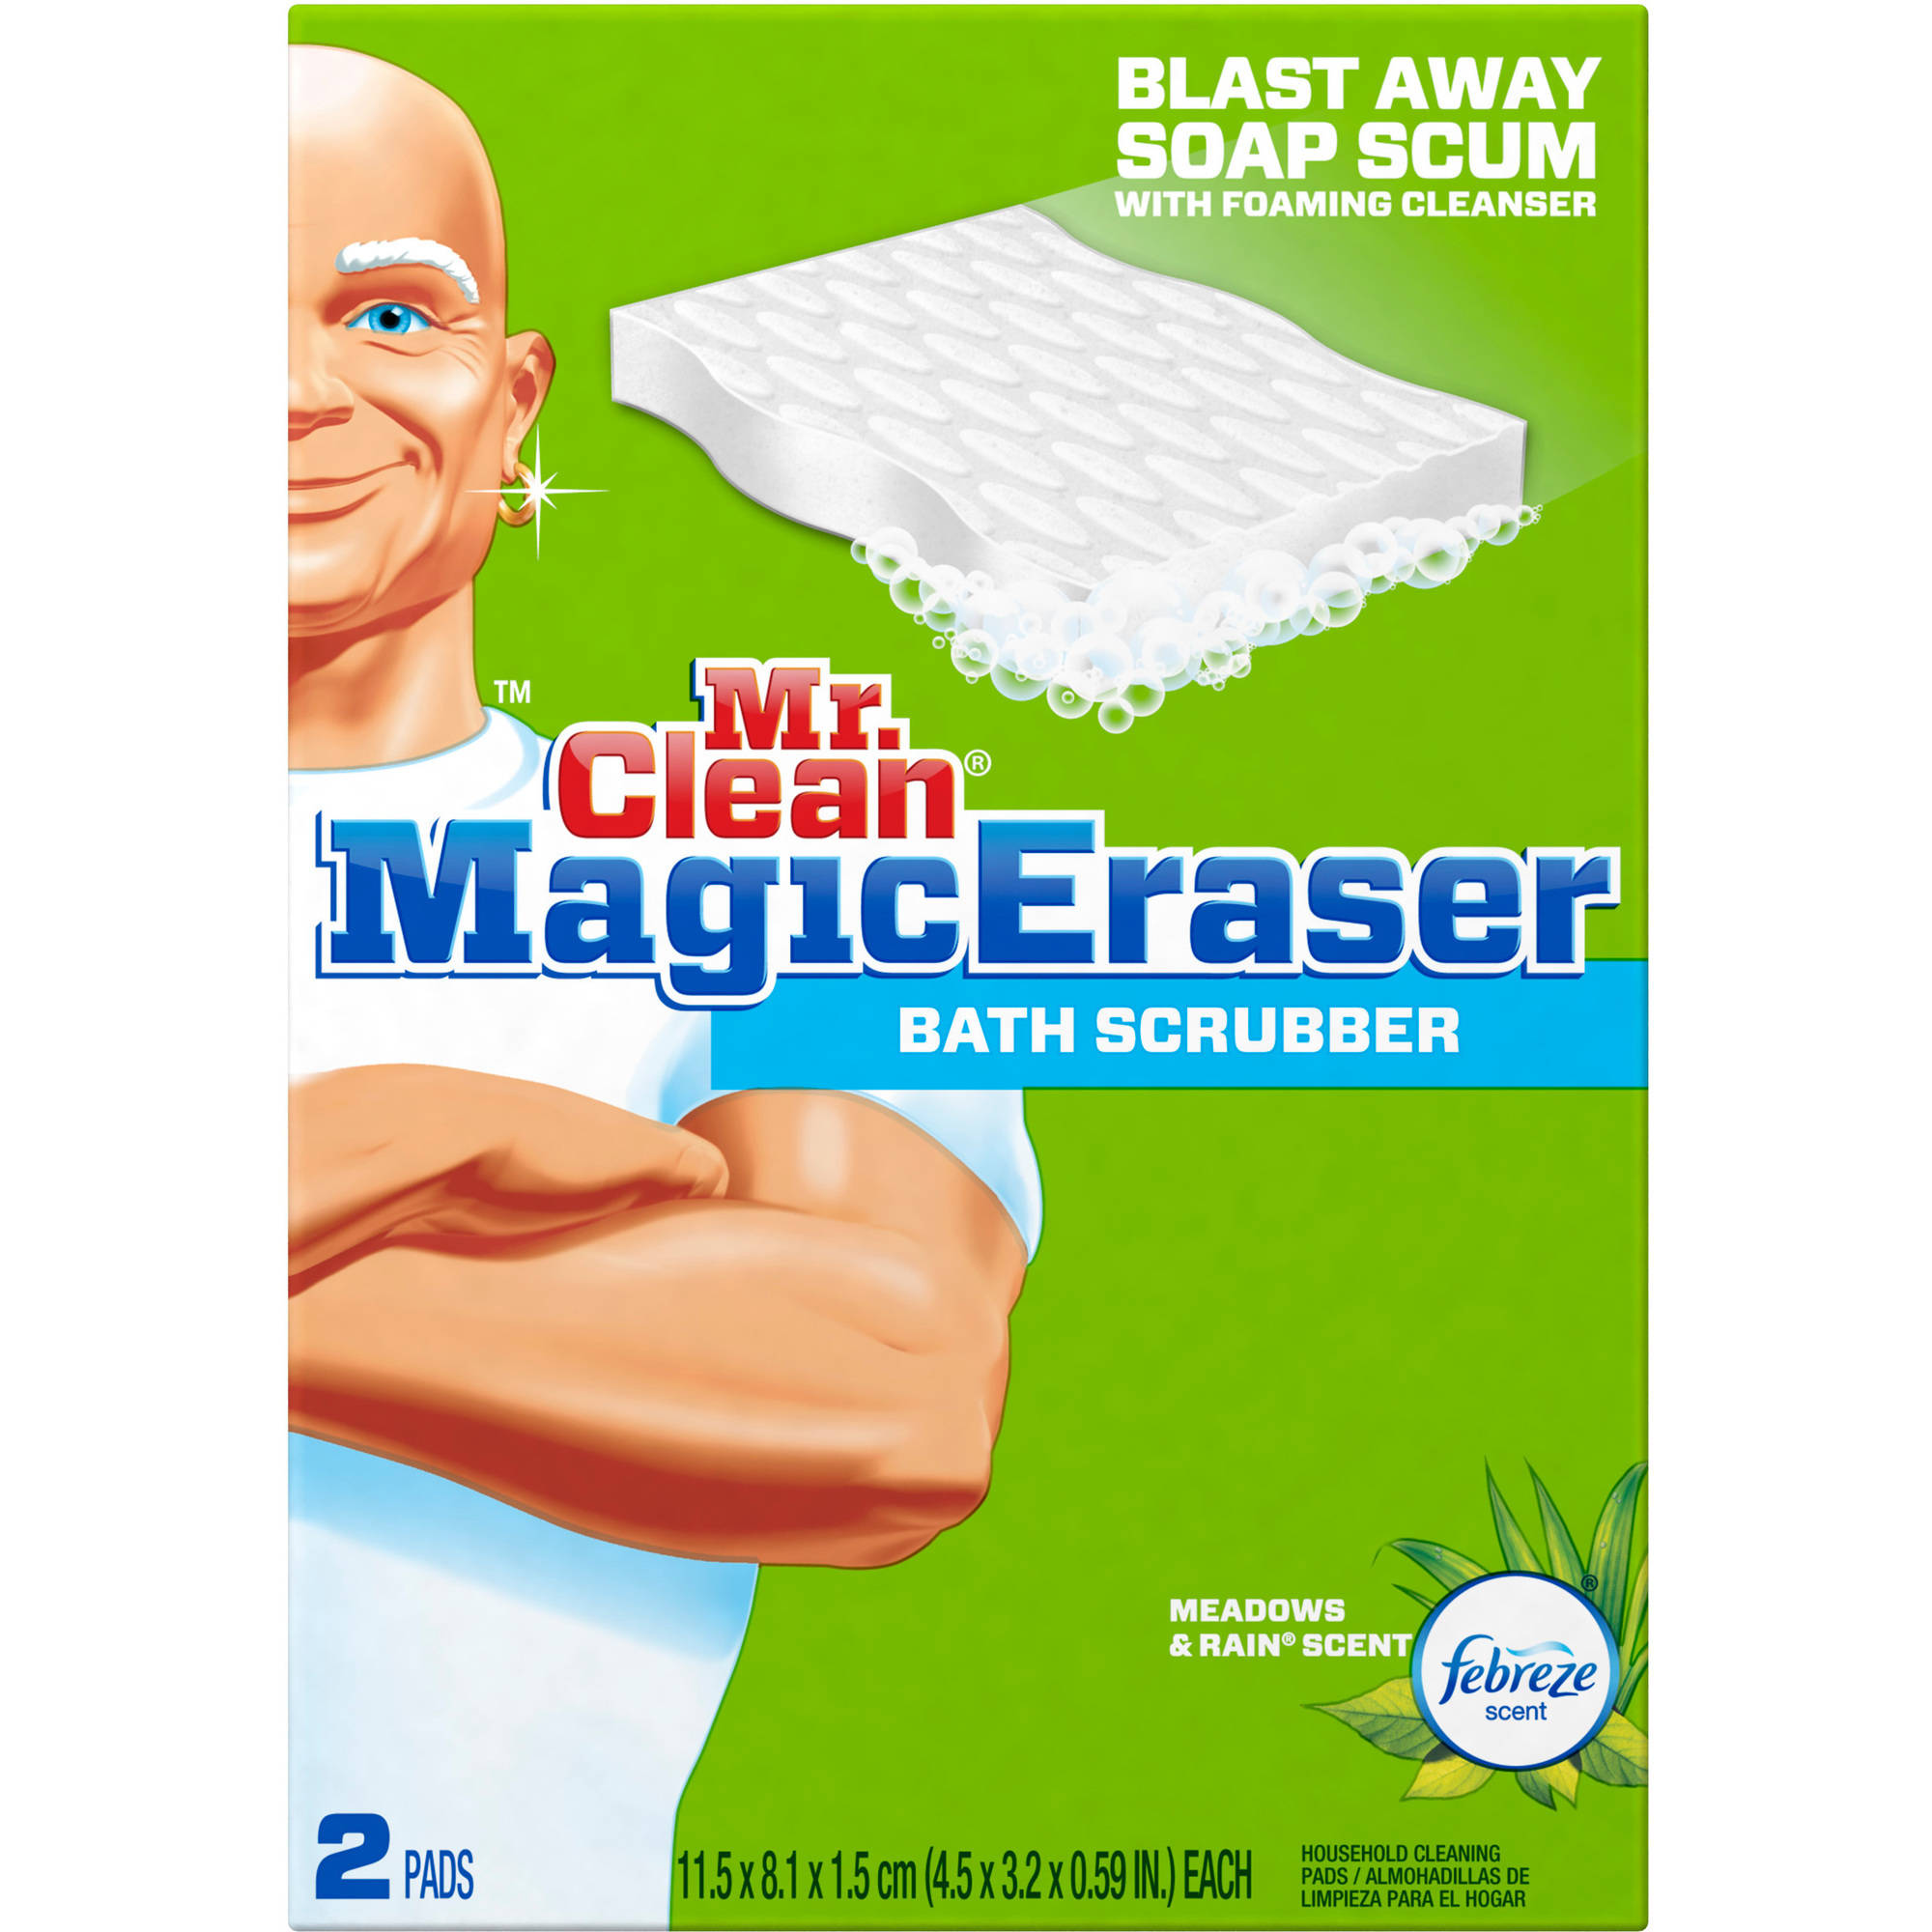 Mr. Clean Magic Eraser Bath Scrubber Febreze Meadows & Rain Scent Cleaning Pads, 2 count